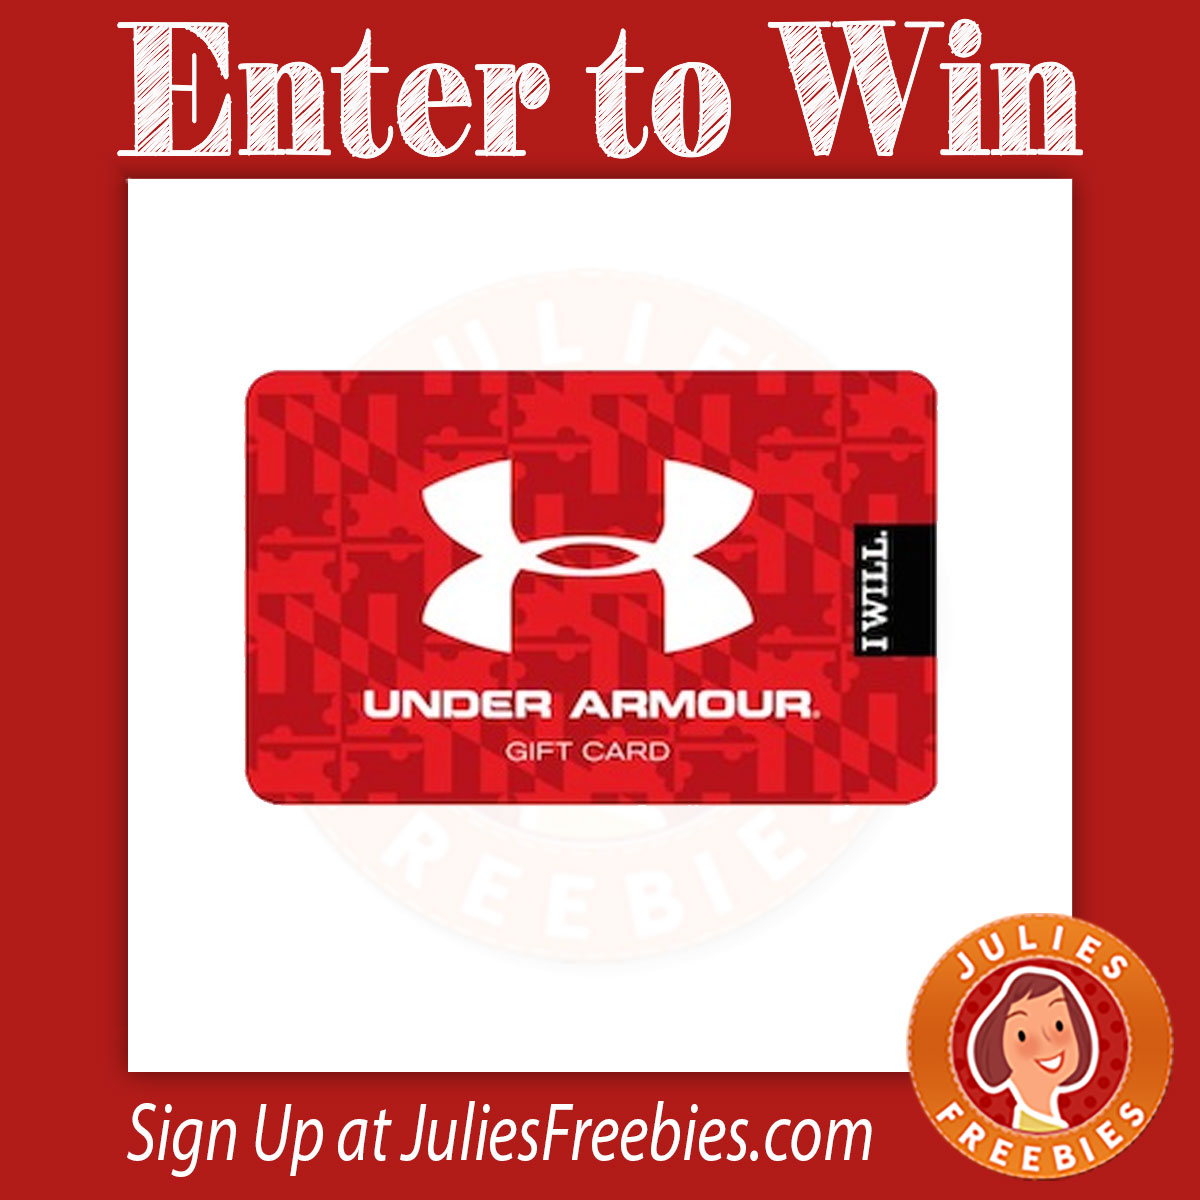 55da1f7b57 Here is an offer where you can enter to win an Under Armour Gift Card.